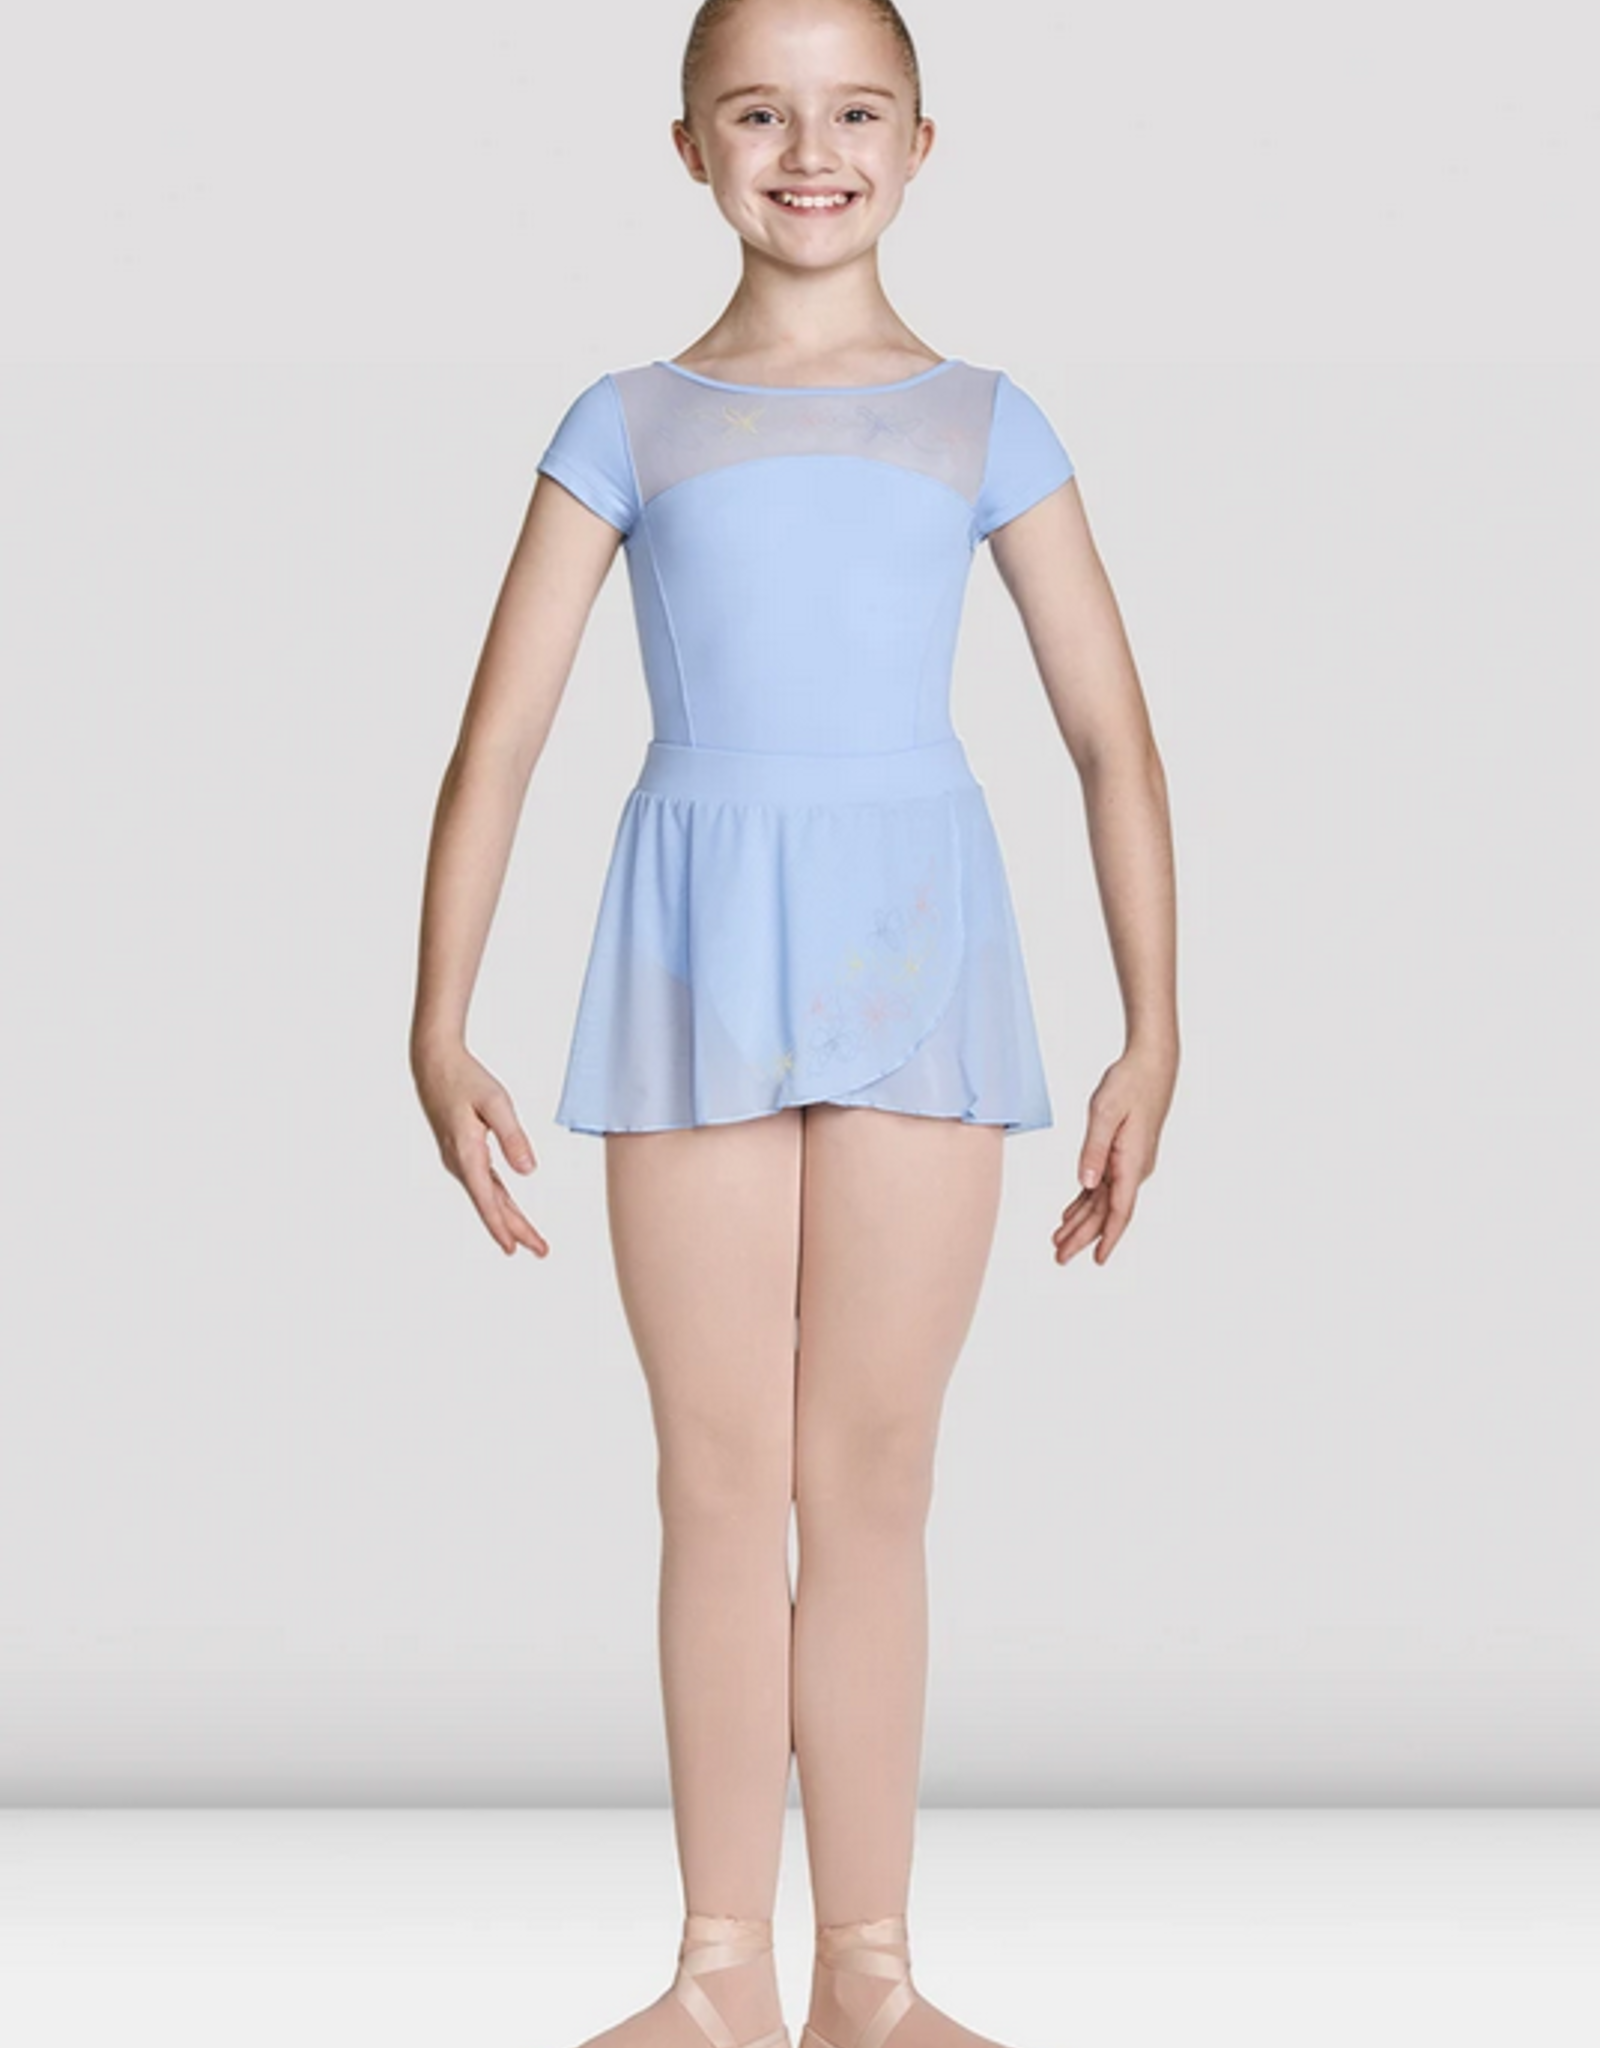 MIRELLA HIGH NECKLINE EMBROIDERED MESH OPEN BACK CHILD CAP SLEEVE LEOTARD (M1530C)